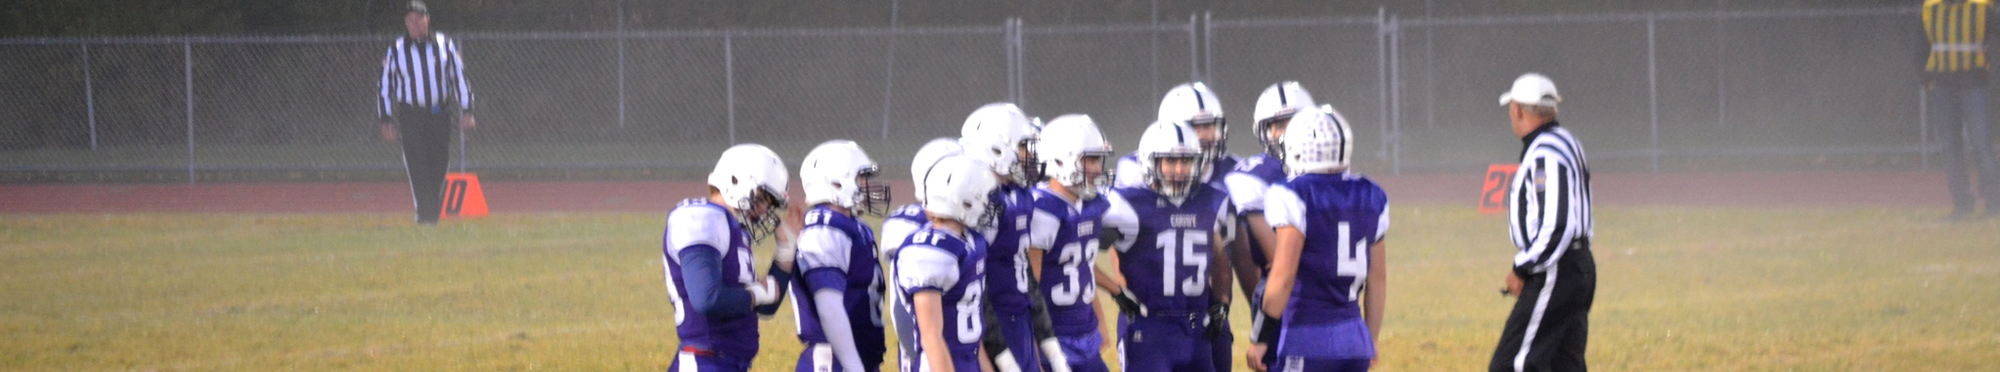 Coudersport Homecoming football game